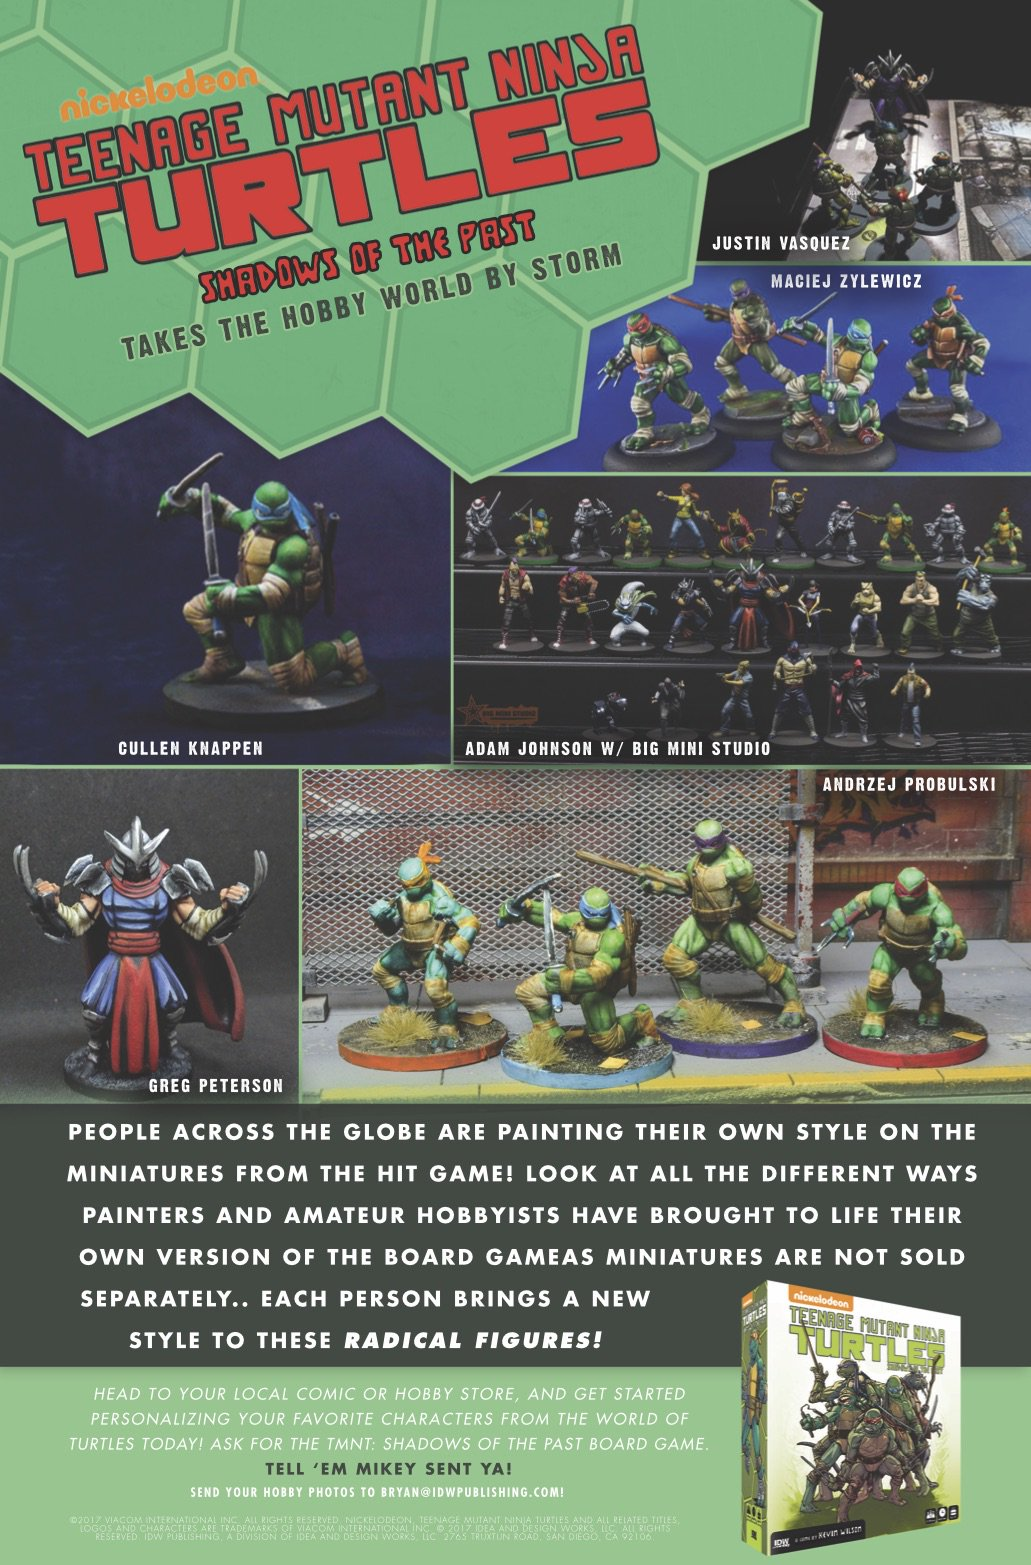 Hobby Store San Diego >> Idw Games در توییتر Idw Games And Tmnt Announces Tmnt